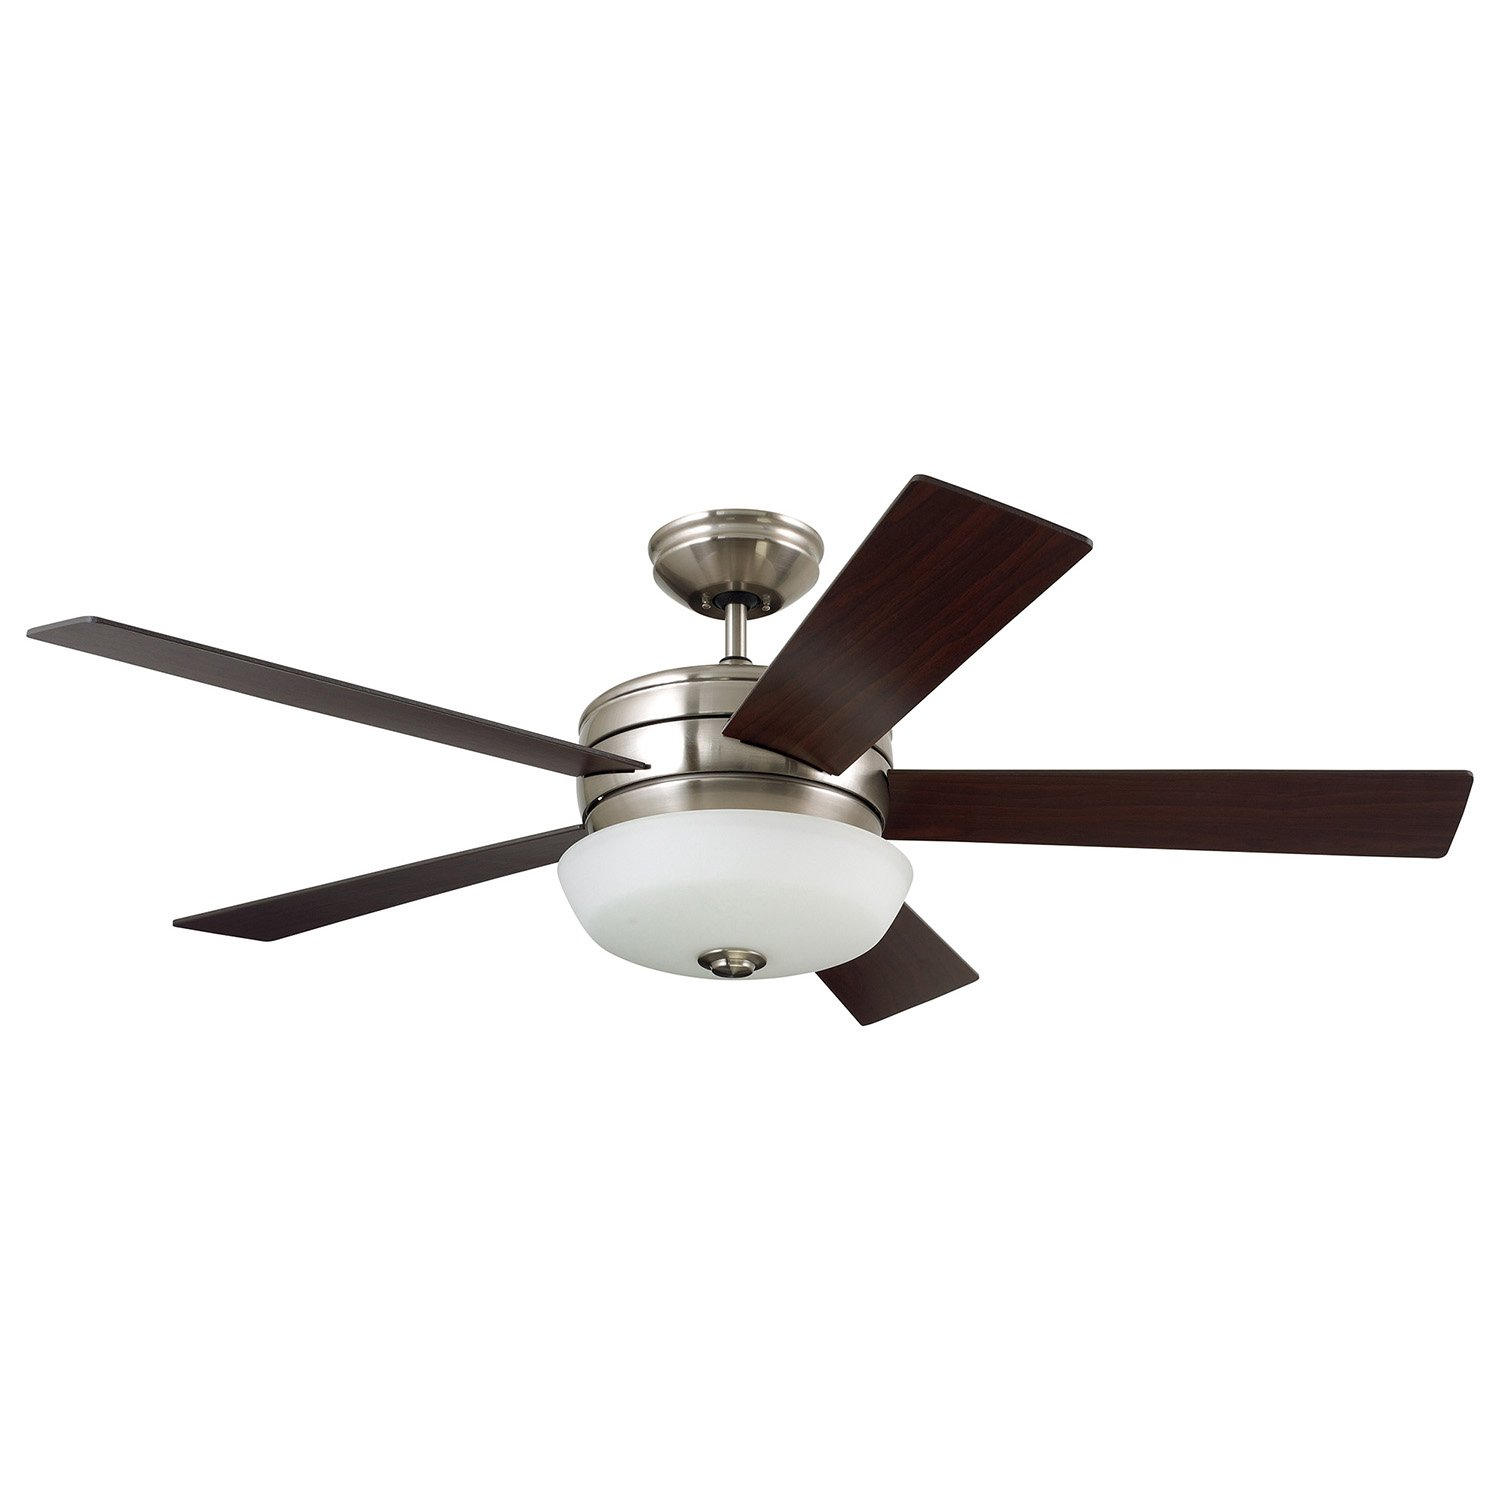 Emerson CF411BS Cronley 54'' Blade Span with integrated light fixture,Includes 4.5'' Downrod and Remote Control with Receiver,Brushed Steel by Emerson